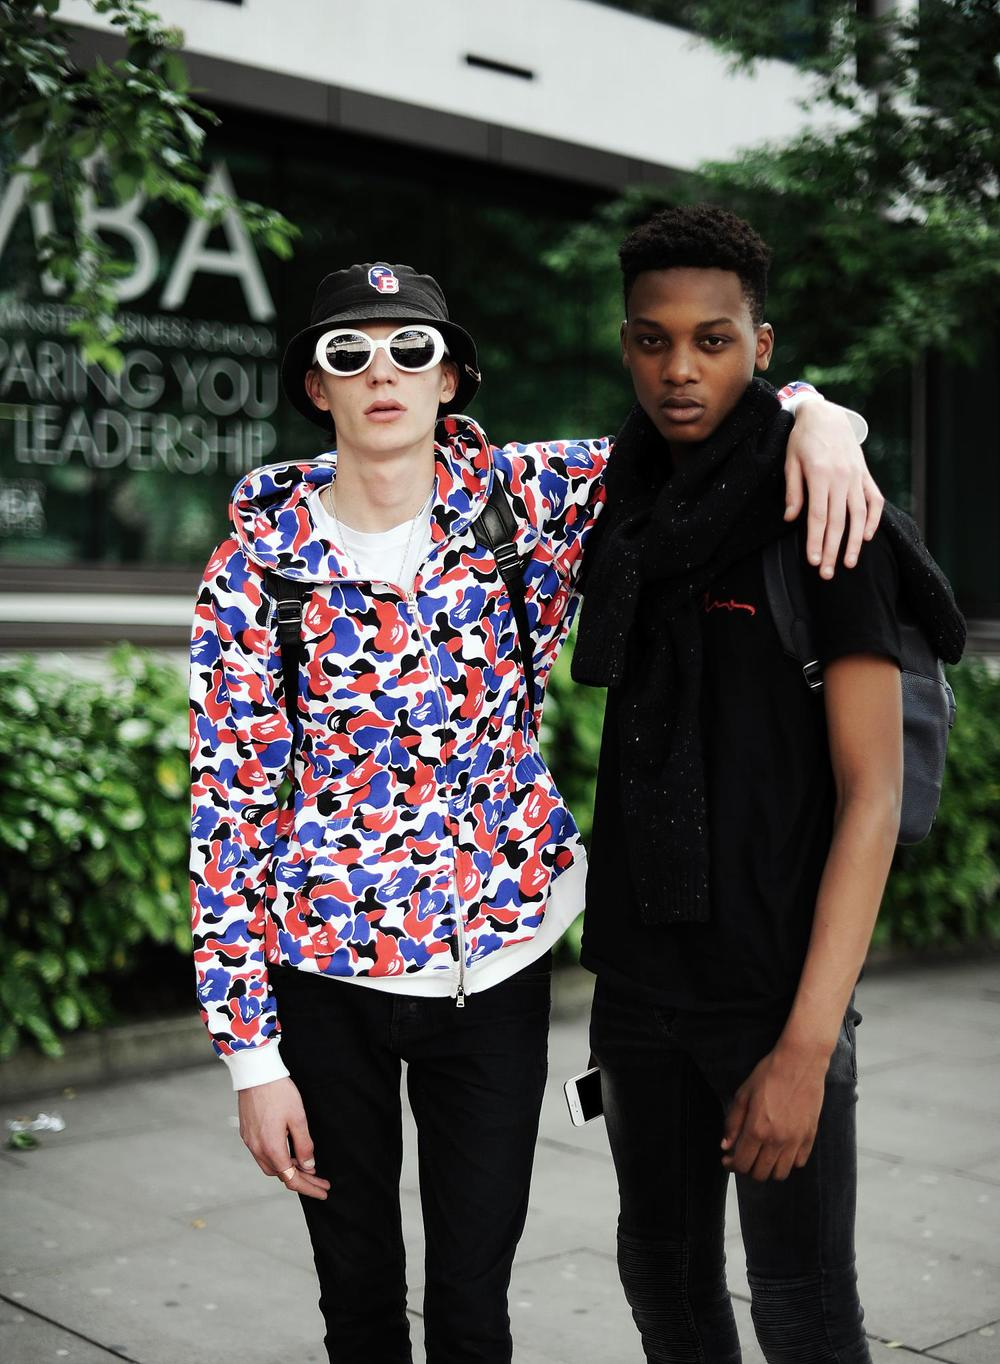 Finnlay Davis @ Elite Models + Aliou Drame @ 16 Men